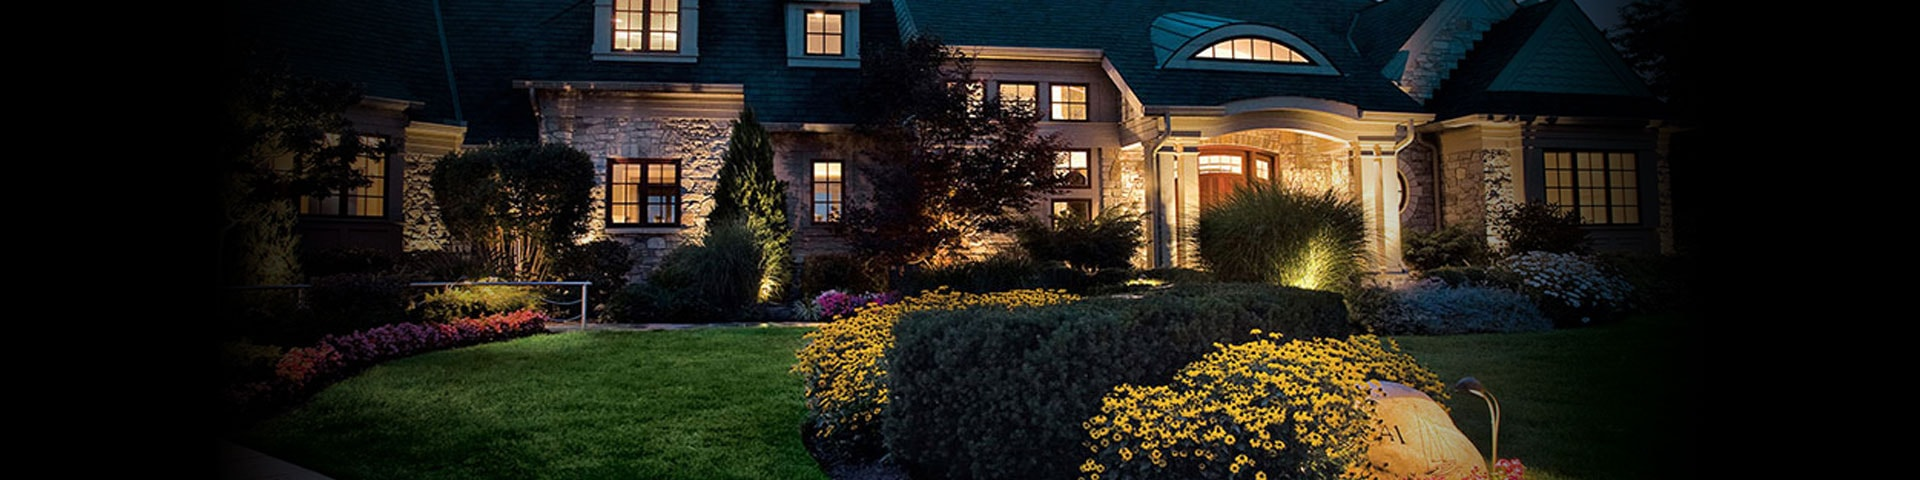 landscape lighting contractor tulsa ok